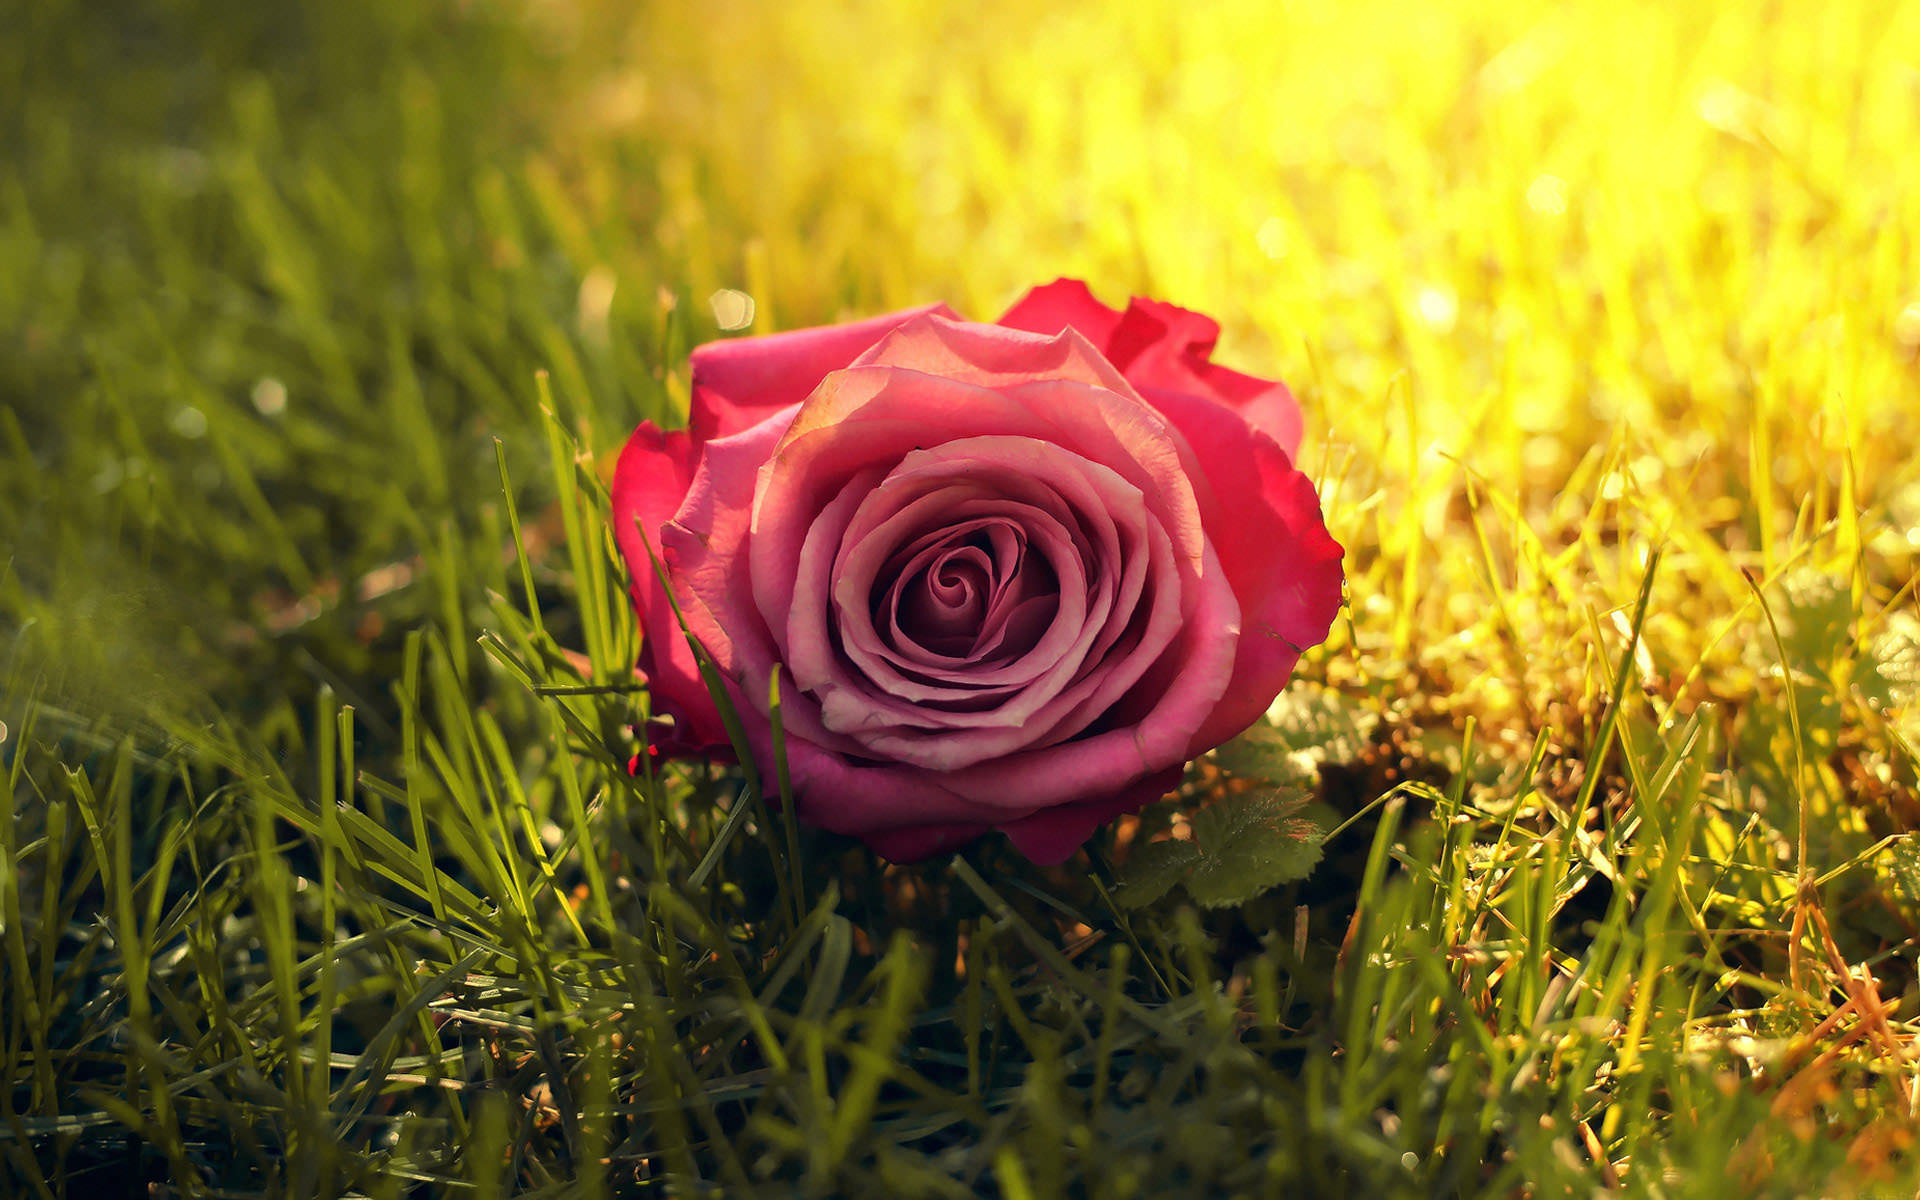 Fantastic Rose on Grass Wallpaper